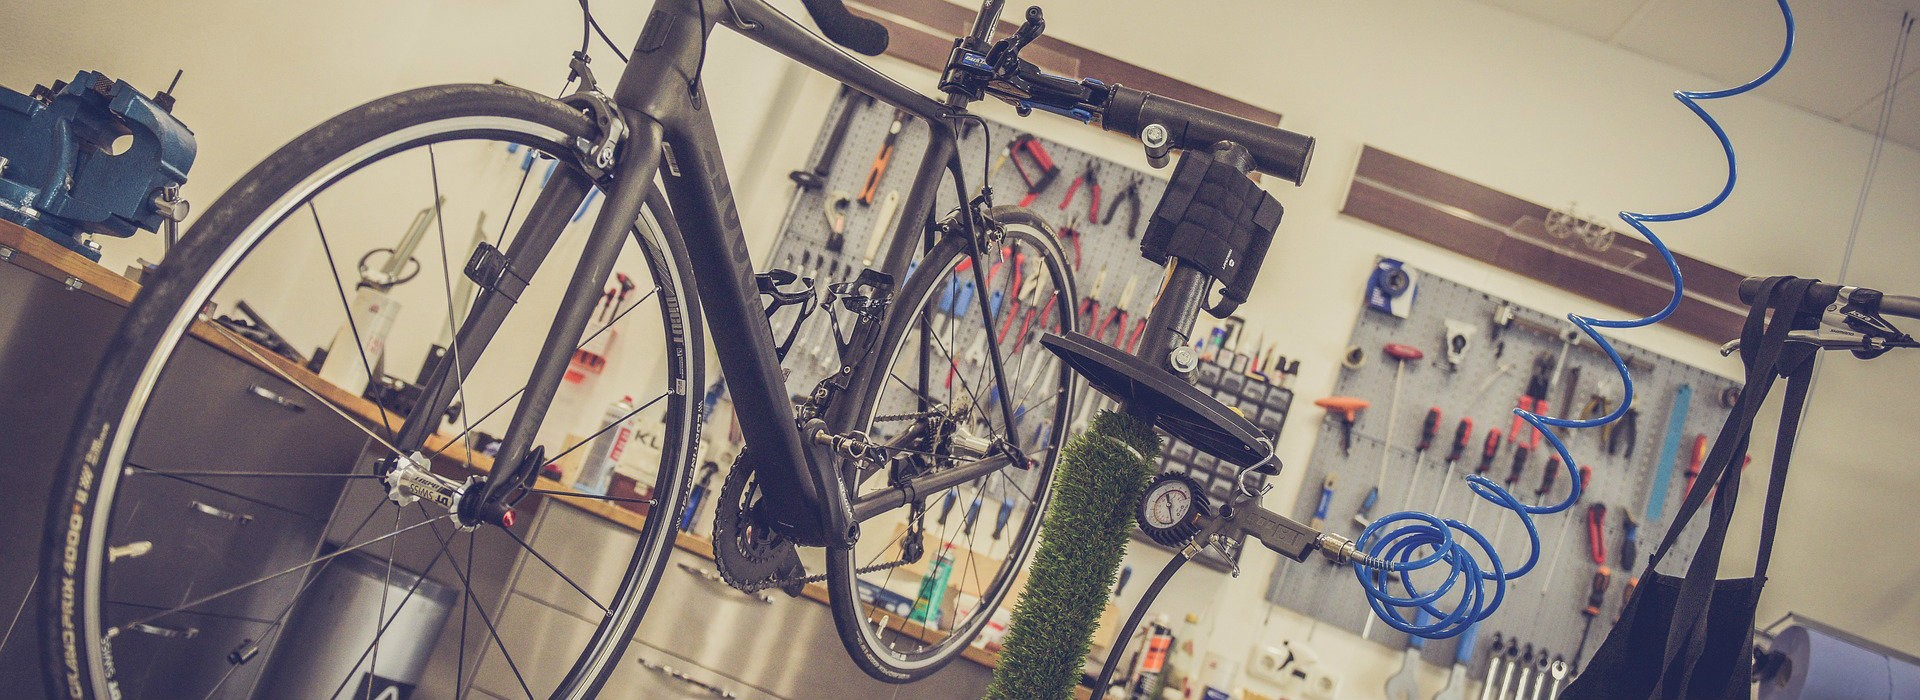 bicycle-1850008-1920-15051